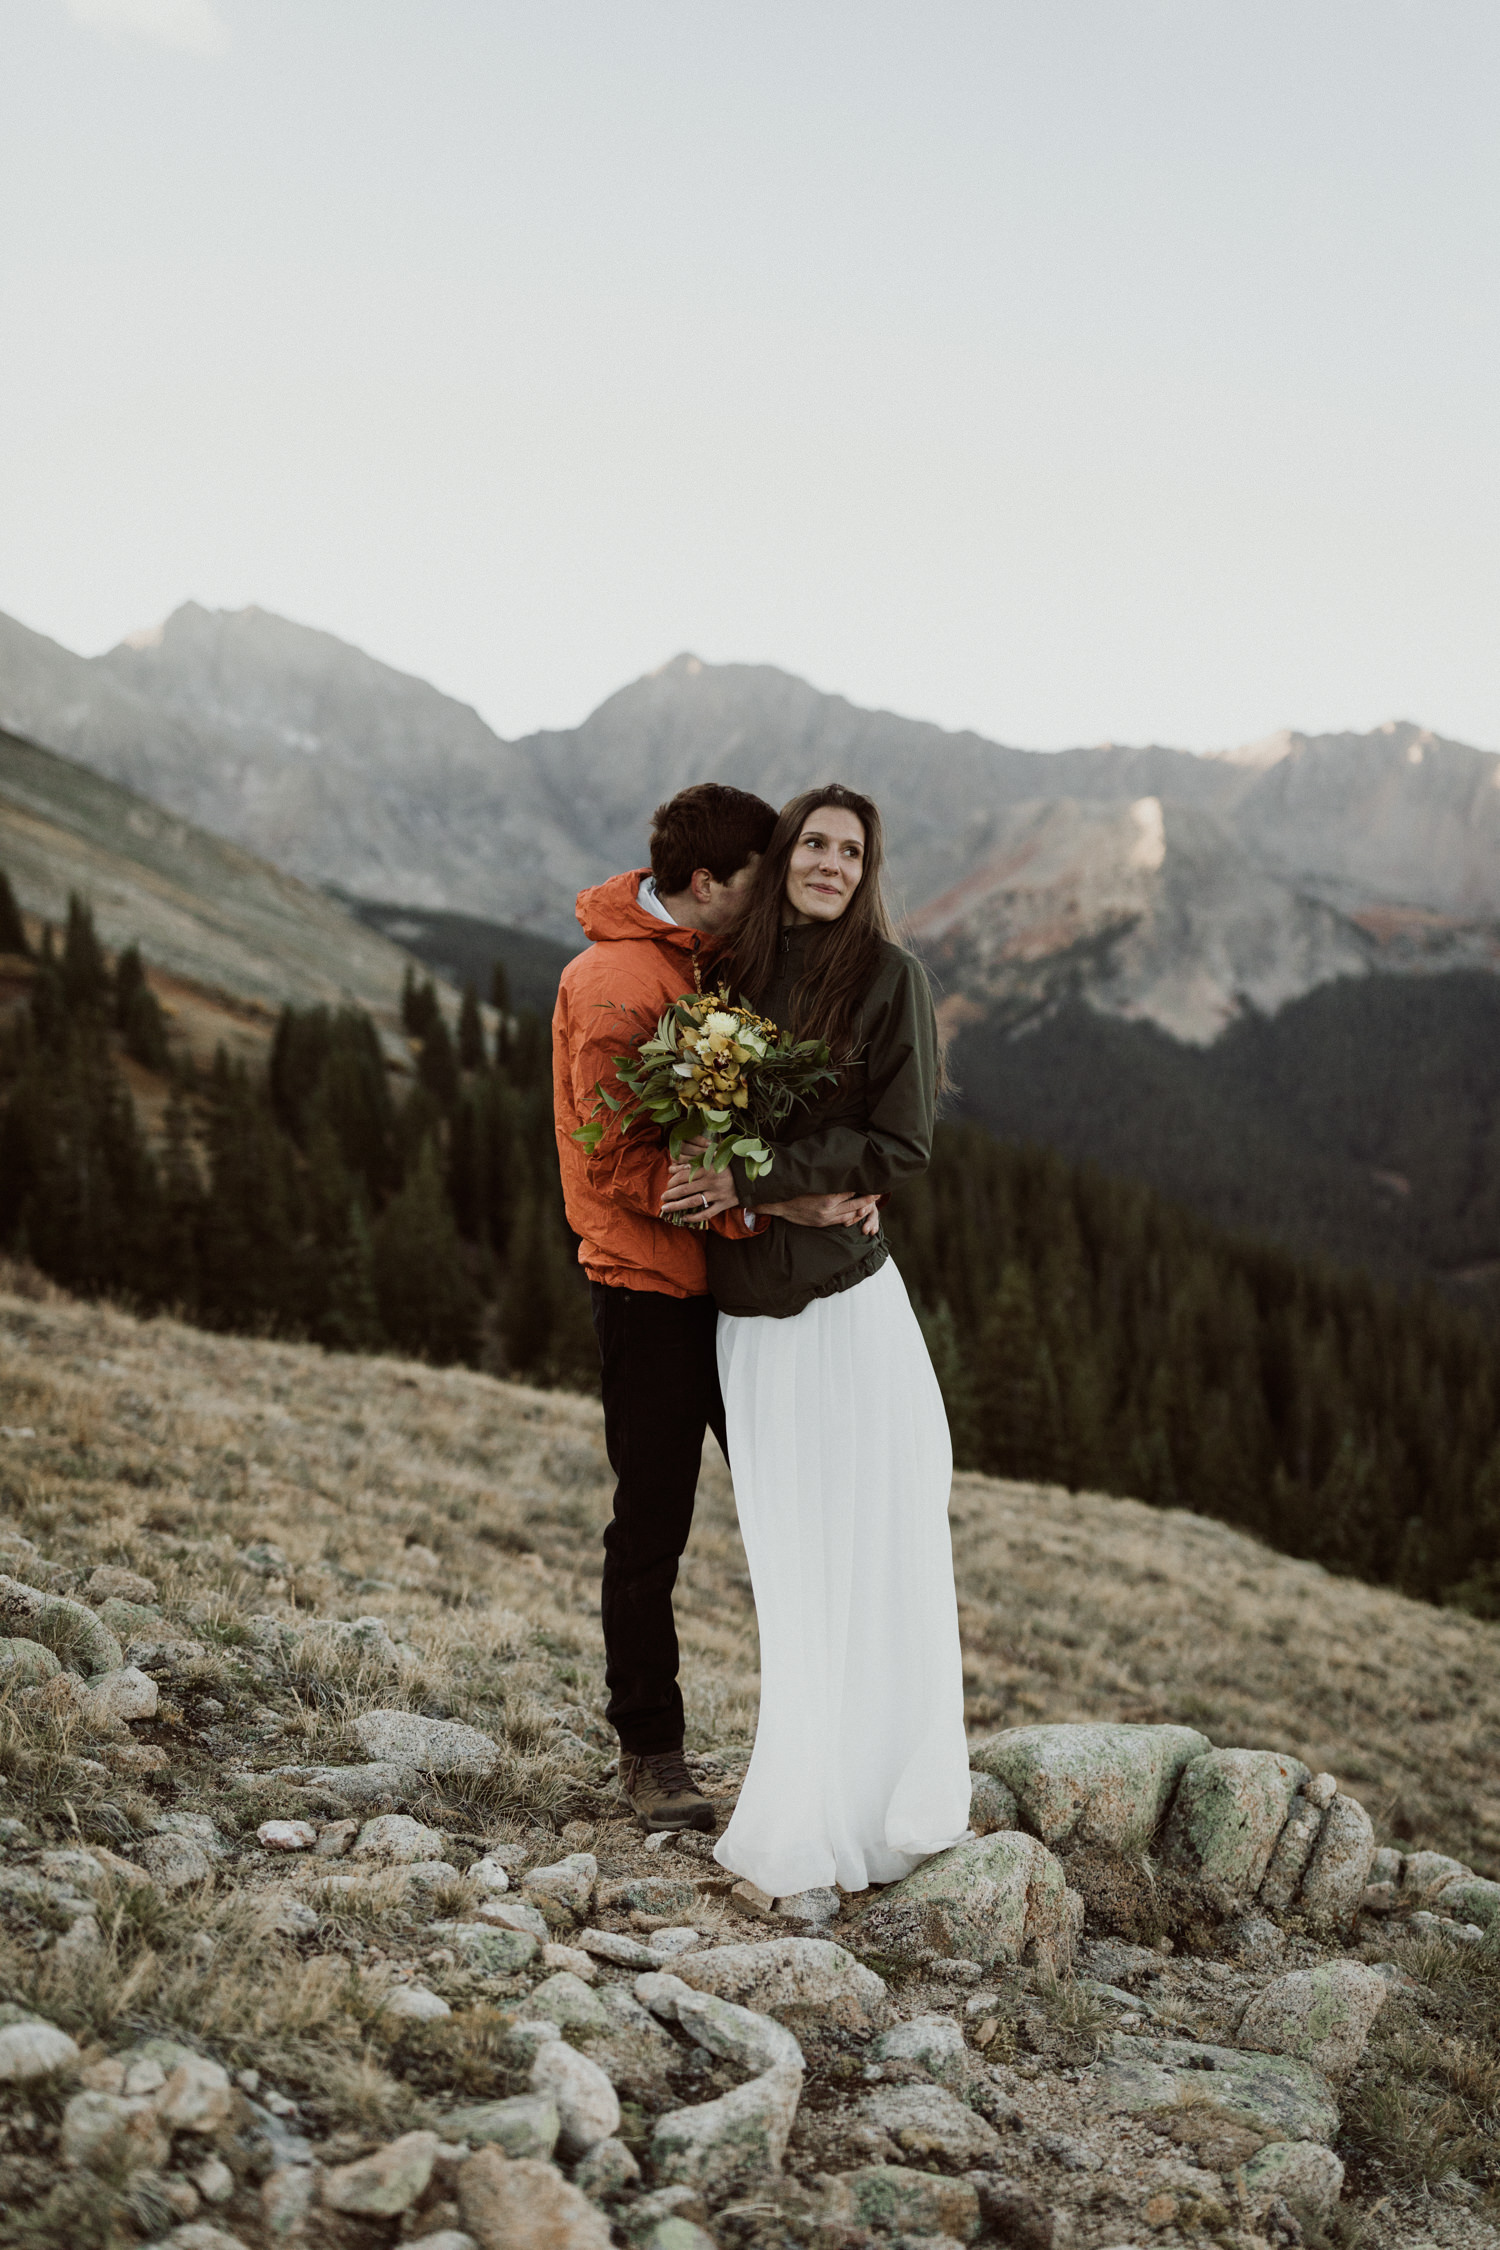 fourteener-adventure-wedding-photographer-25.jpg